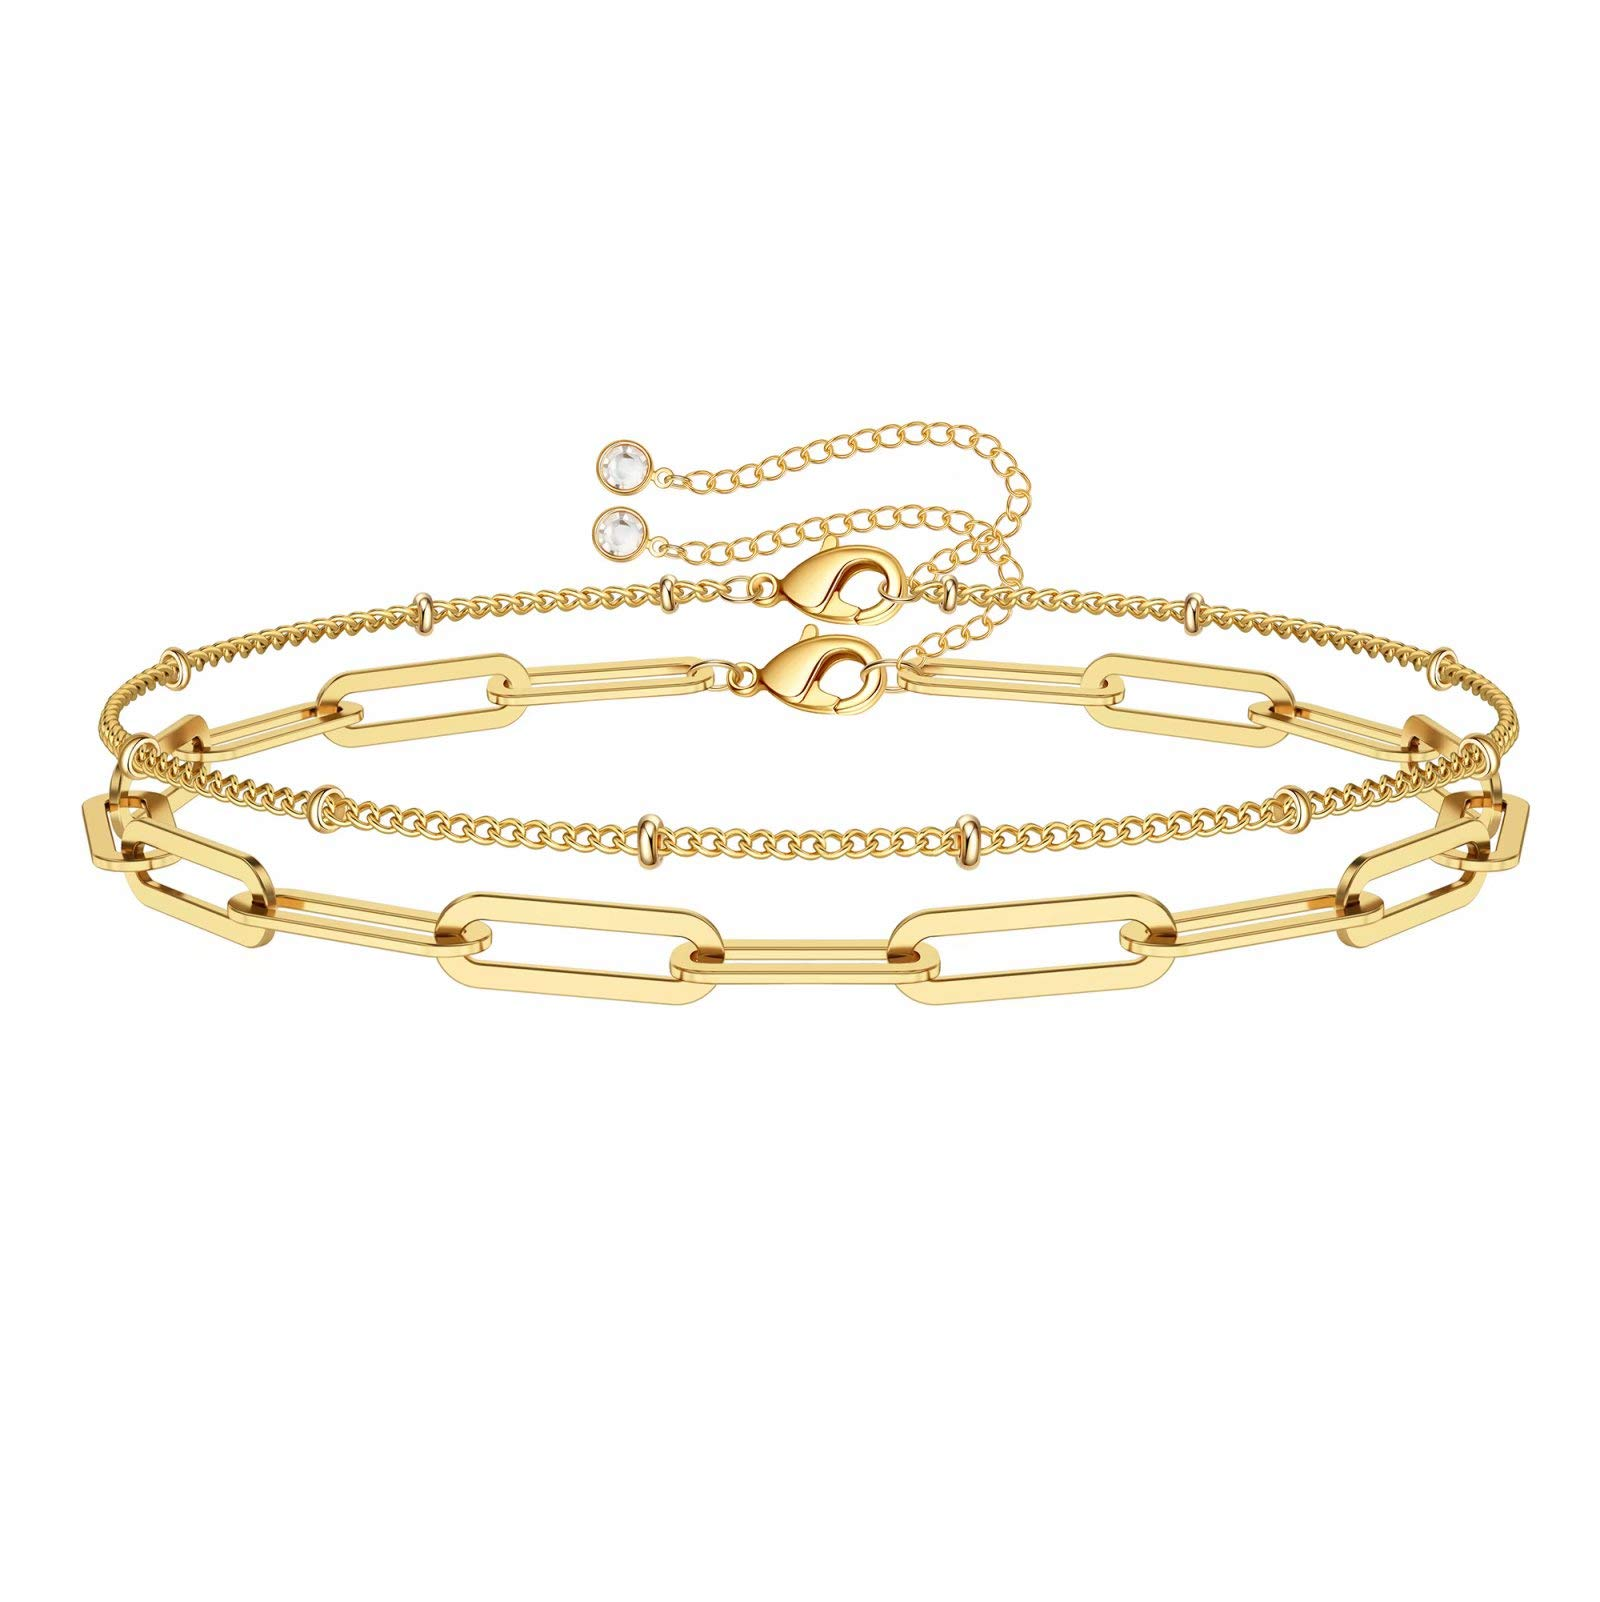 Dainty Chain Bracelet Gift for Her Gold Chain Bracelet Gold Filled Mariner Link Bracelet Gold Layering Bracelet Gold Bracelet Bracelet